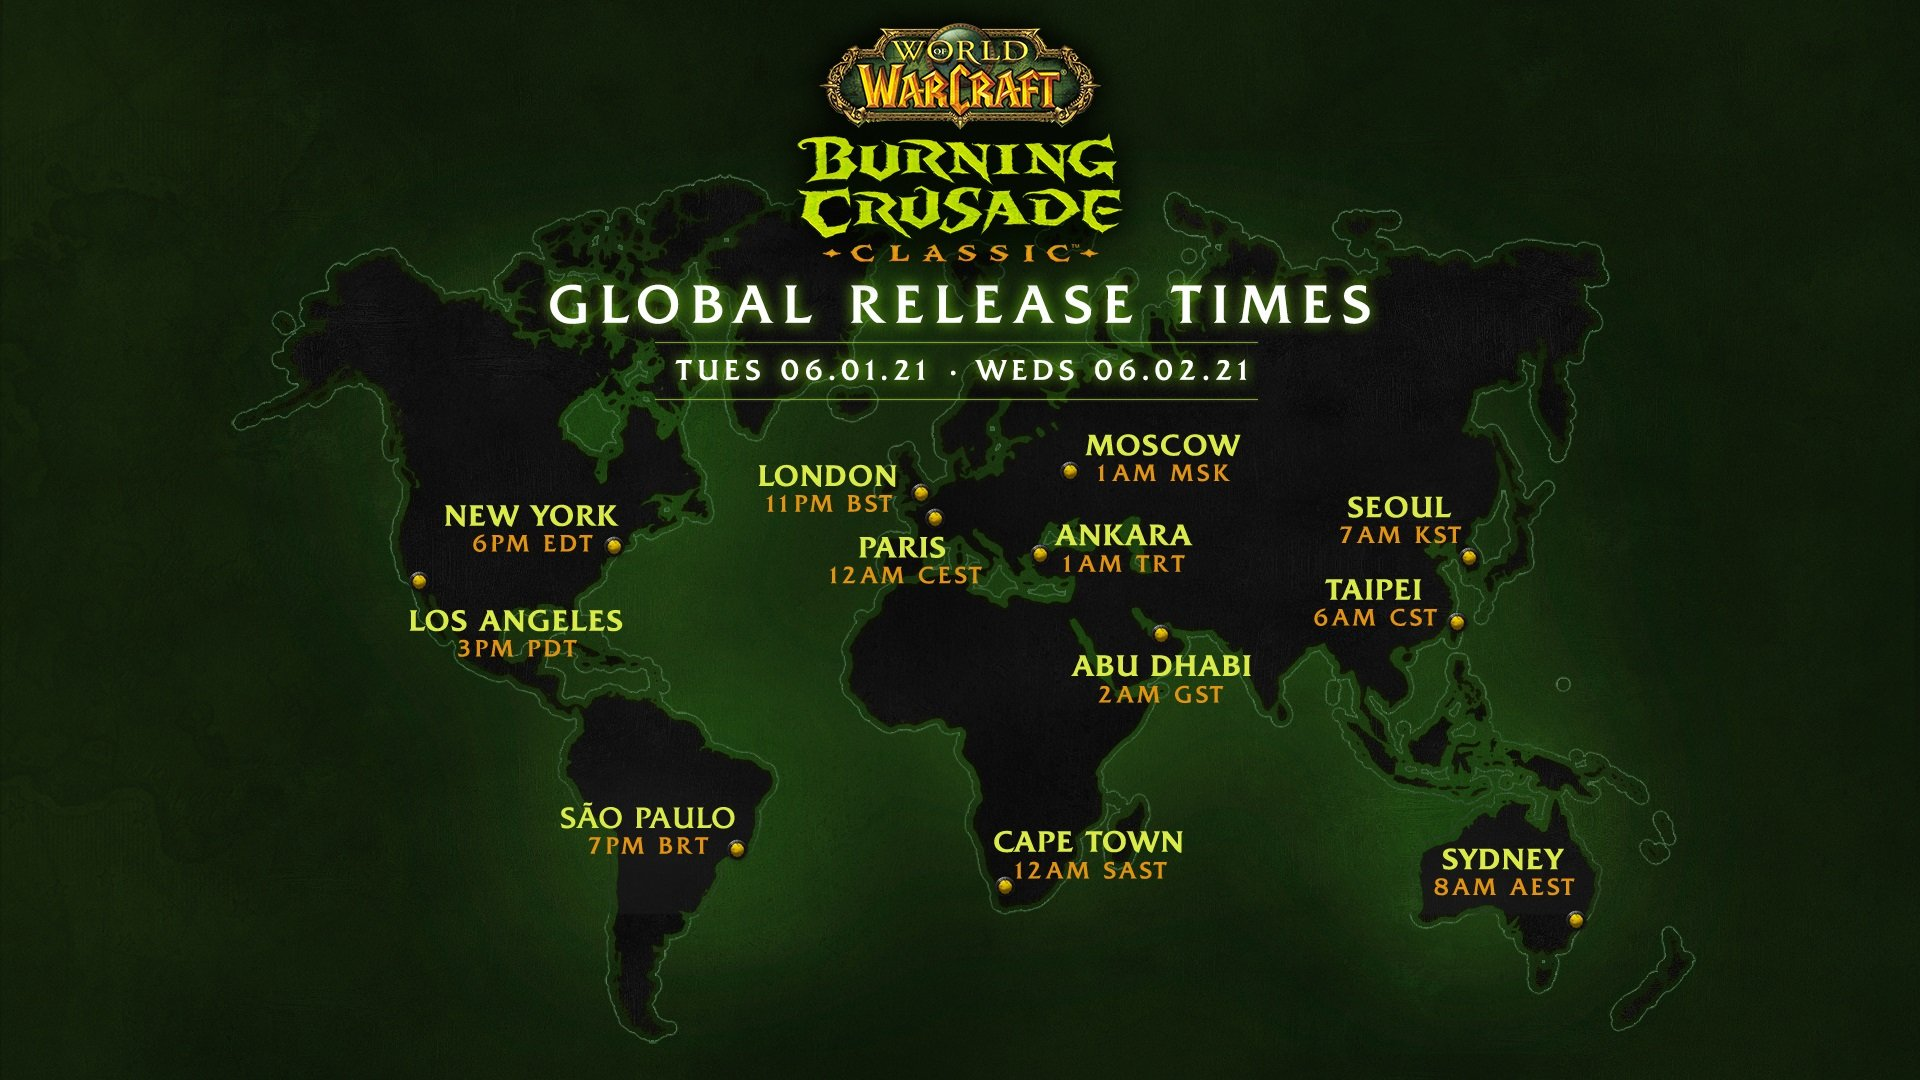 Update Wow Classic Burning Crusade Is Launching Way Sooner Than Expected With Unfortunate Character Cloning Fees Destructoid